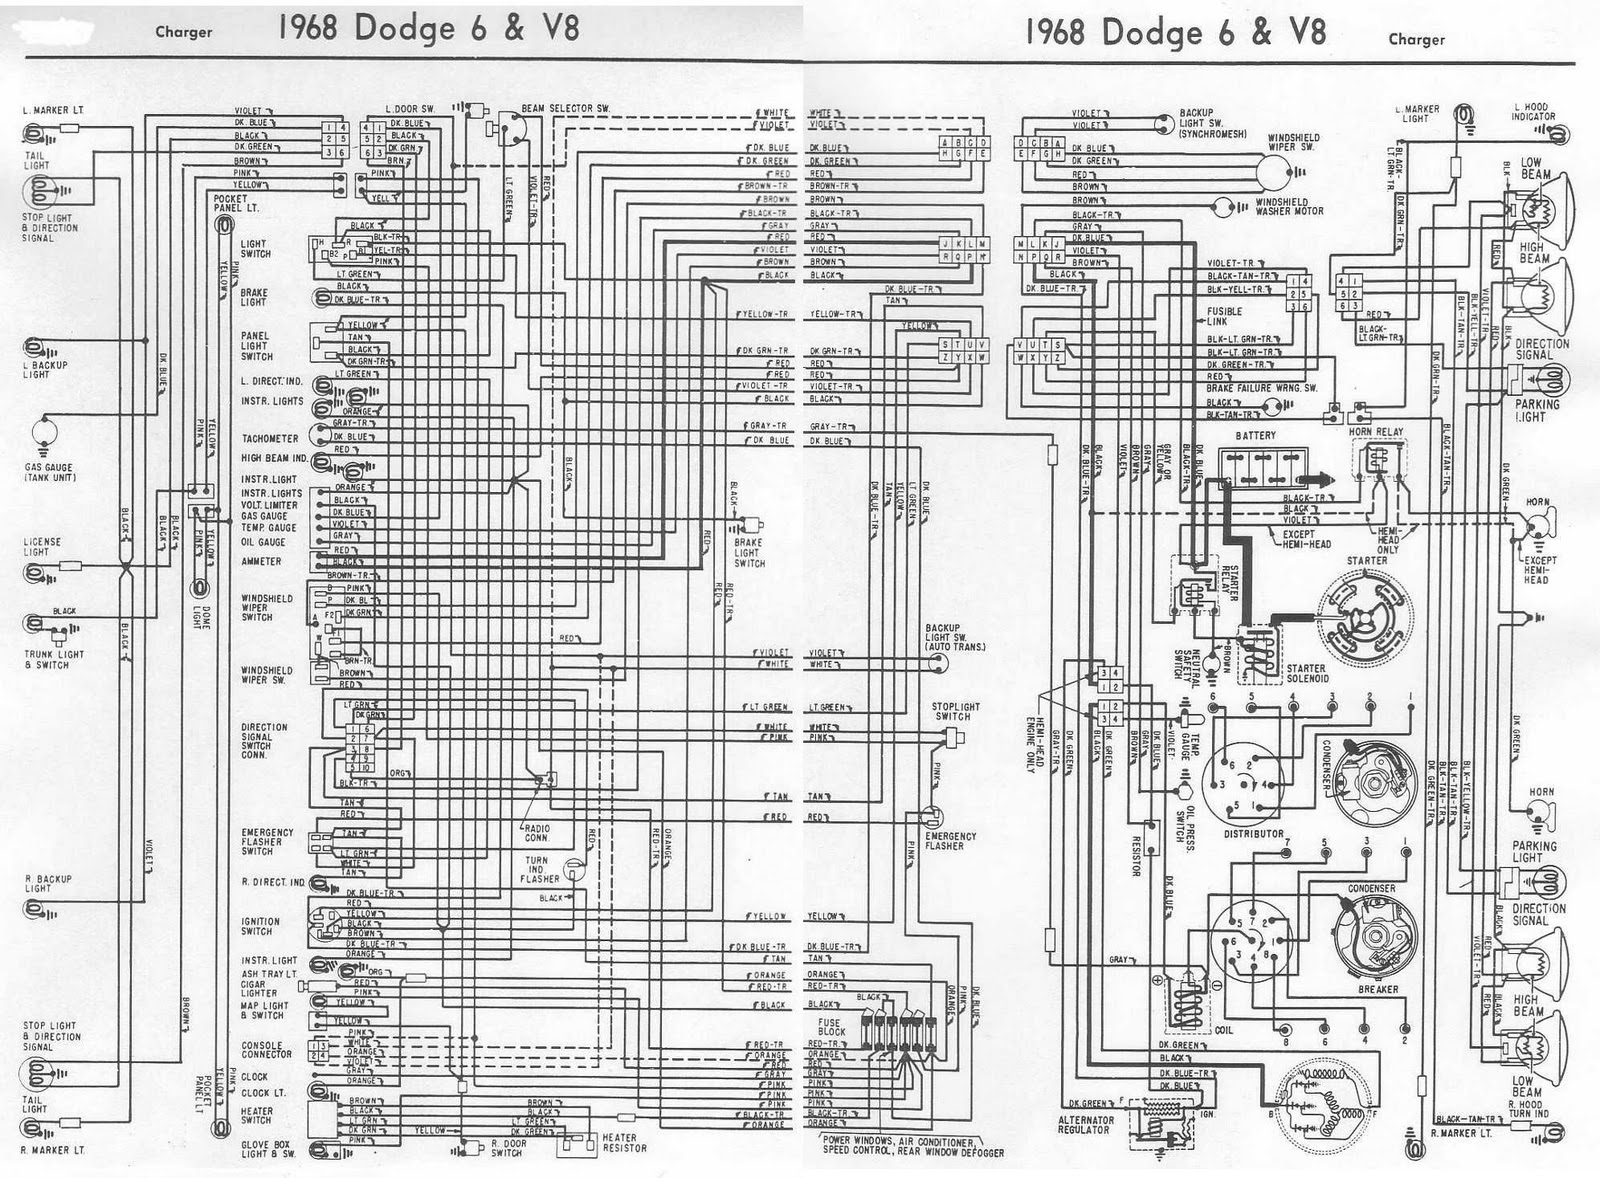 wiring diagram for 1966 dodge coronet wiring diagram1968 coronet wiring diagram universal wiring diagramdodge coronet wiring [ 1600 x 1178 Pixel ]